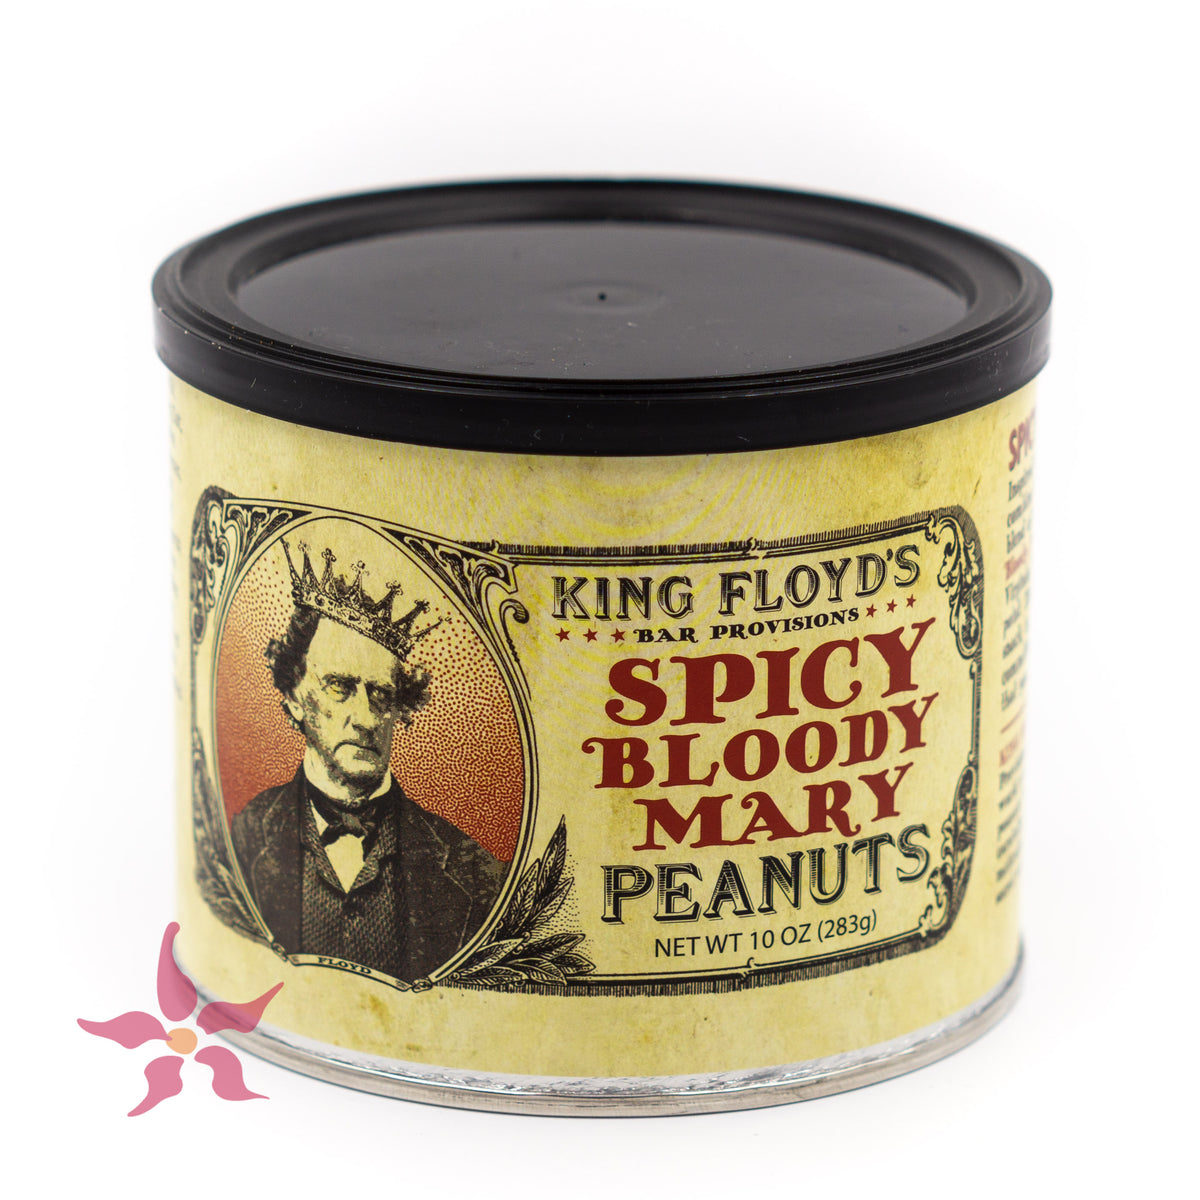 King Floyd's Spicy Bloody Mary Virginia Peanuts